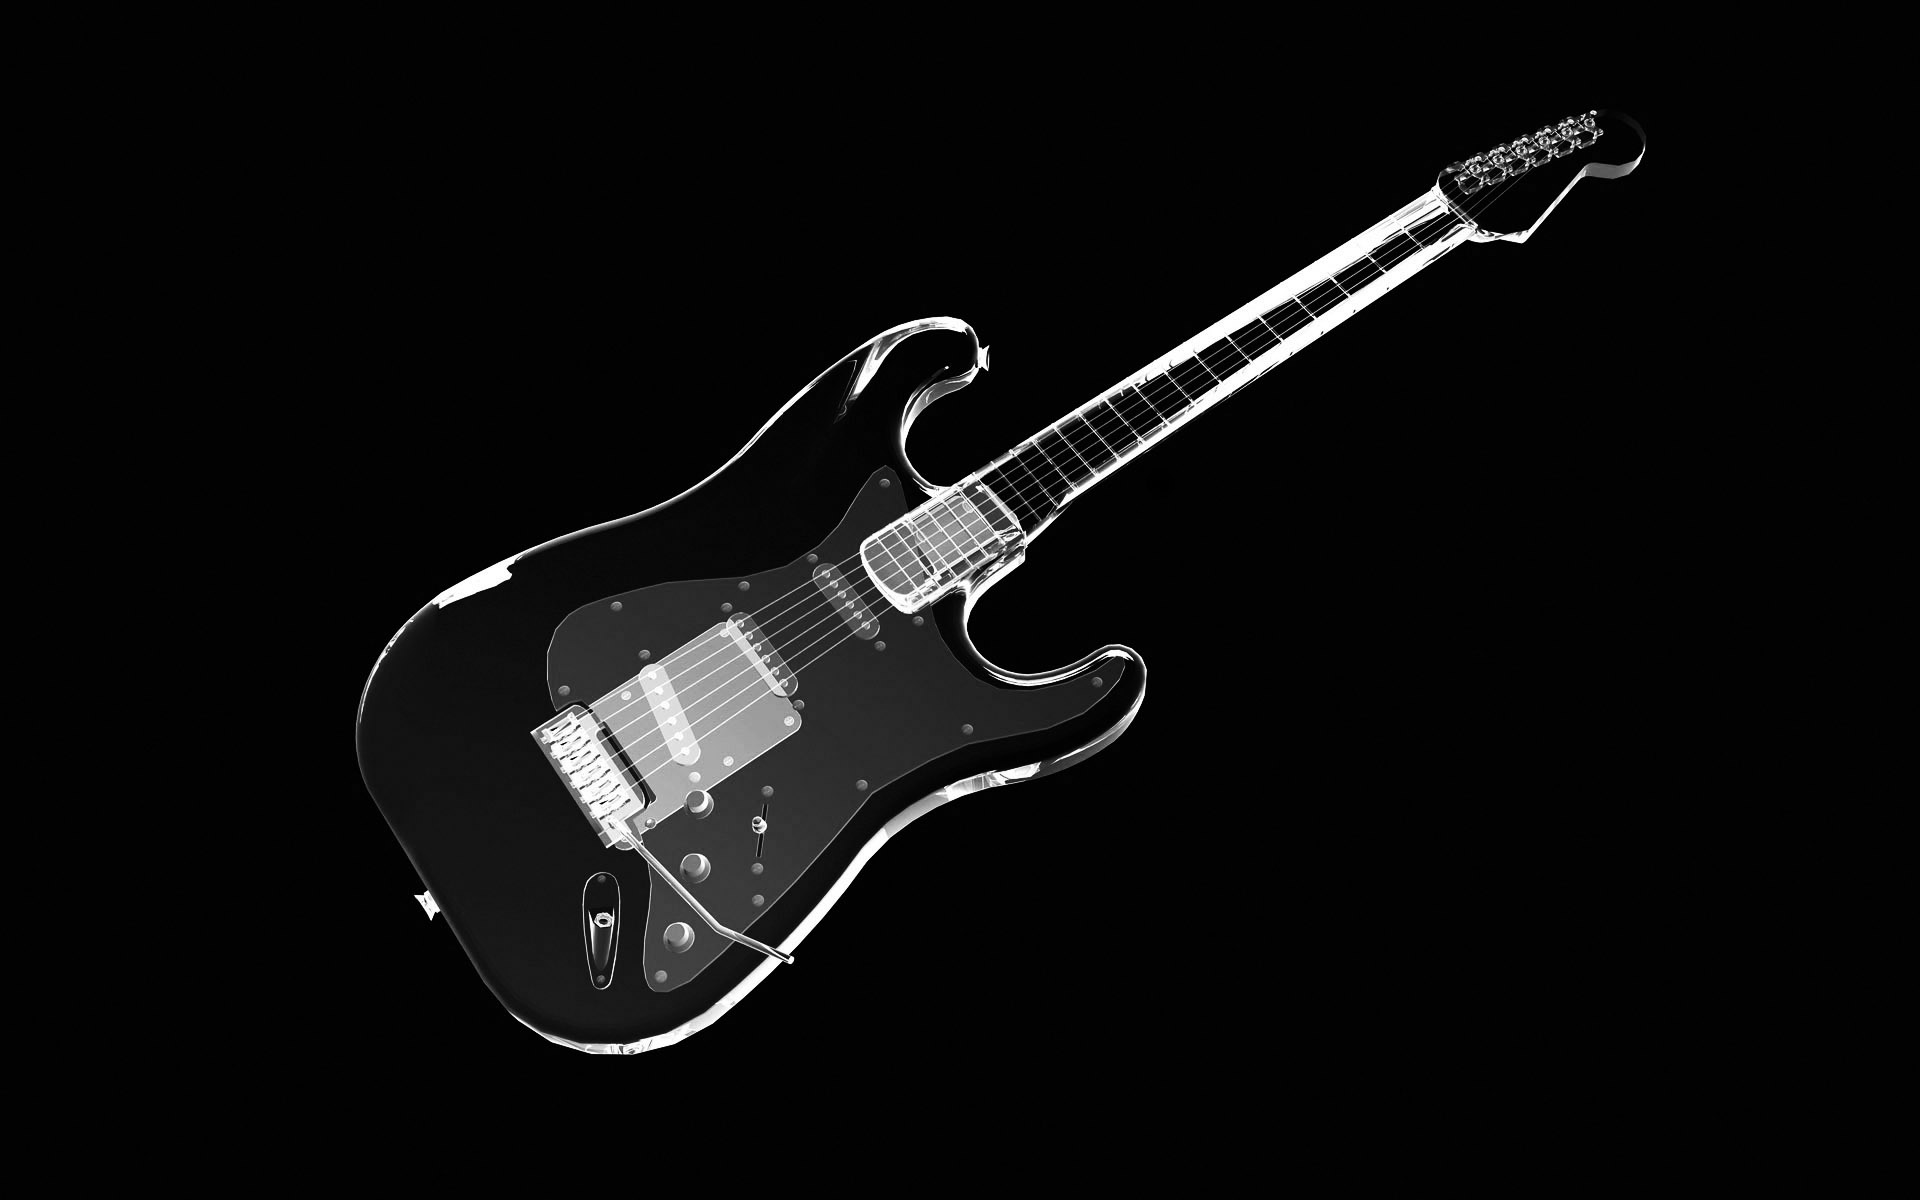 color scenic wallpaper guitar photo containing wallpapers black 1920x1200